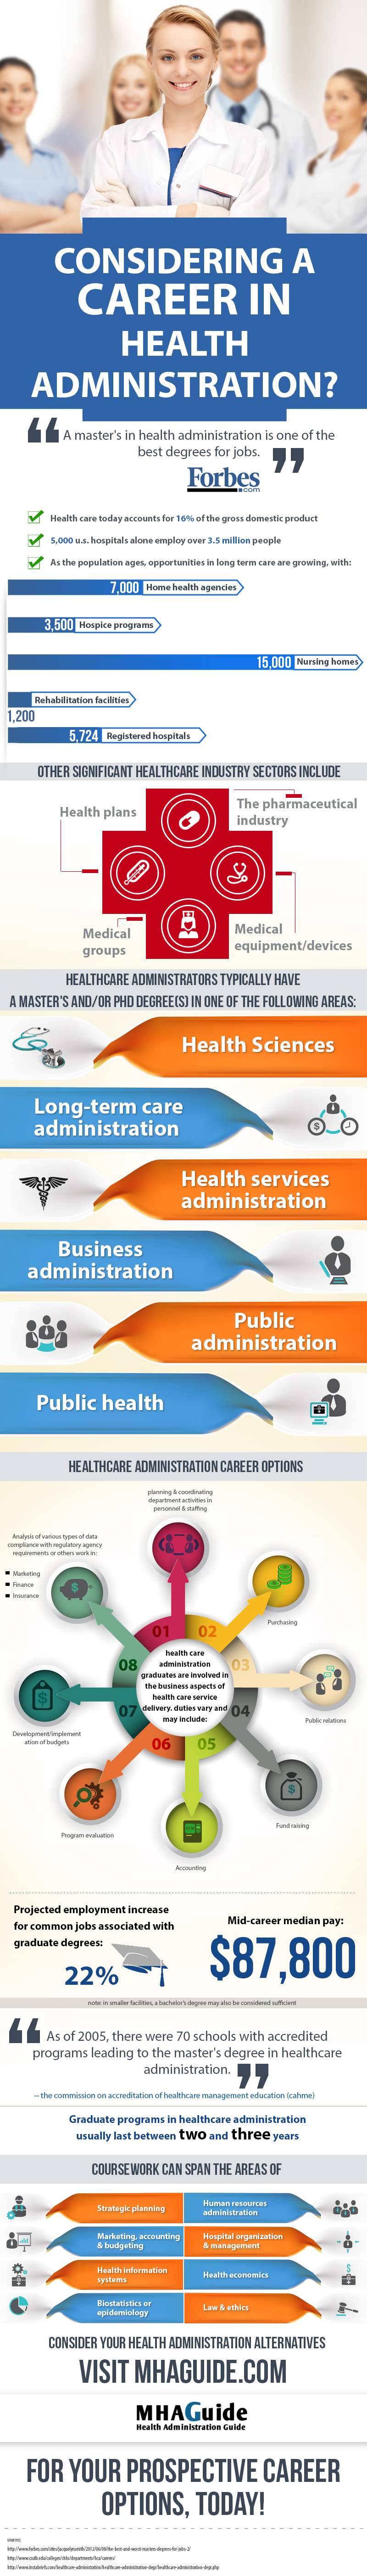 Considering a Carrer in Health Administration?